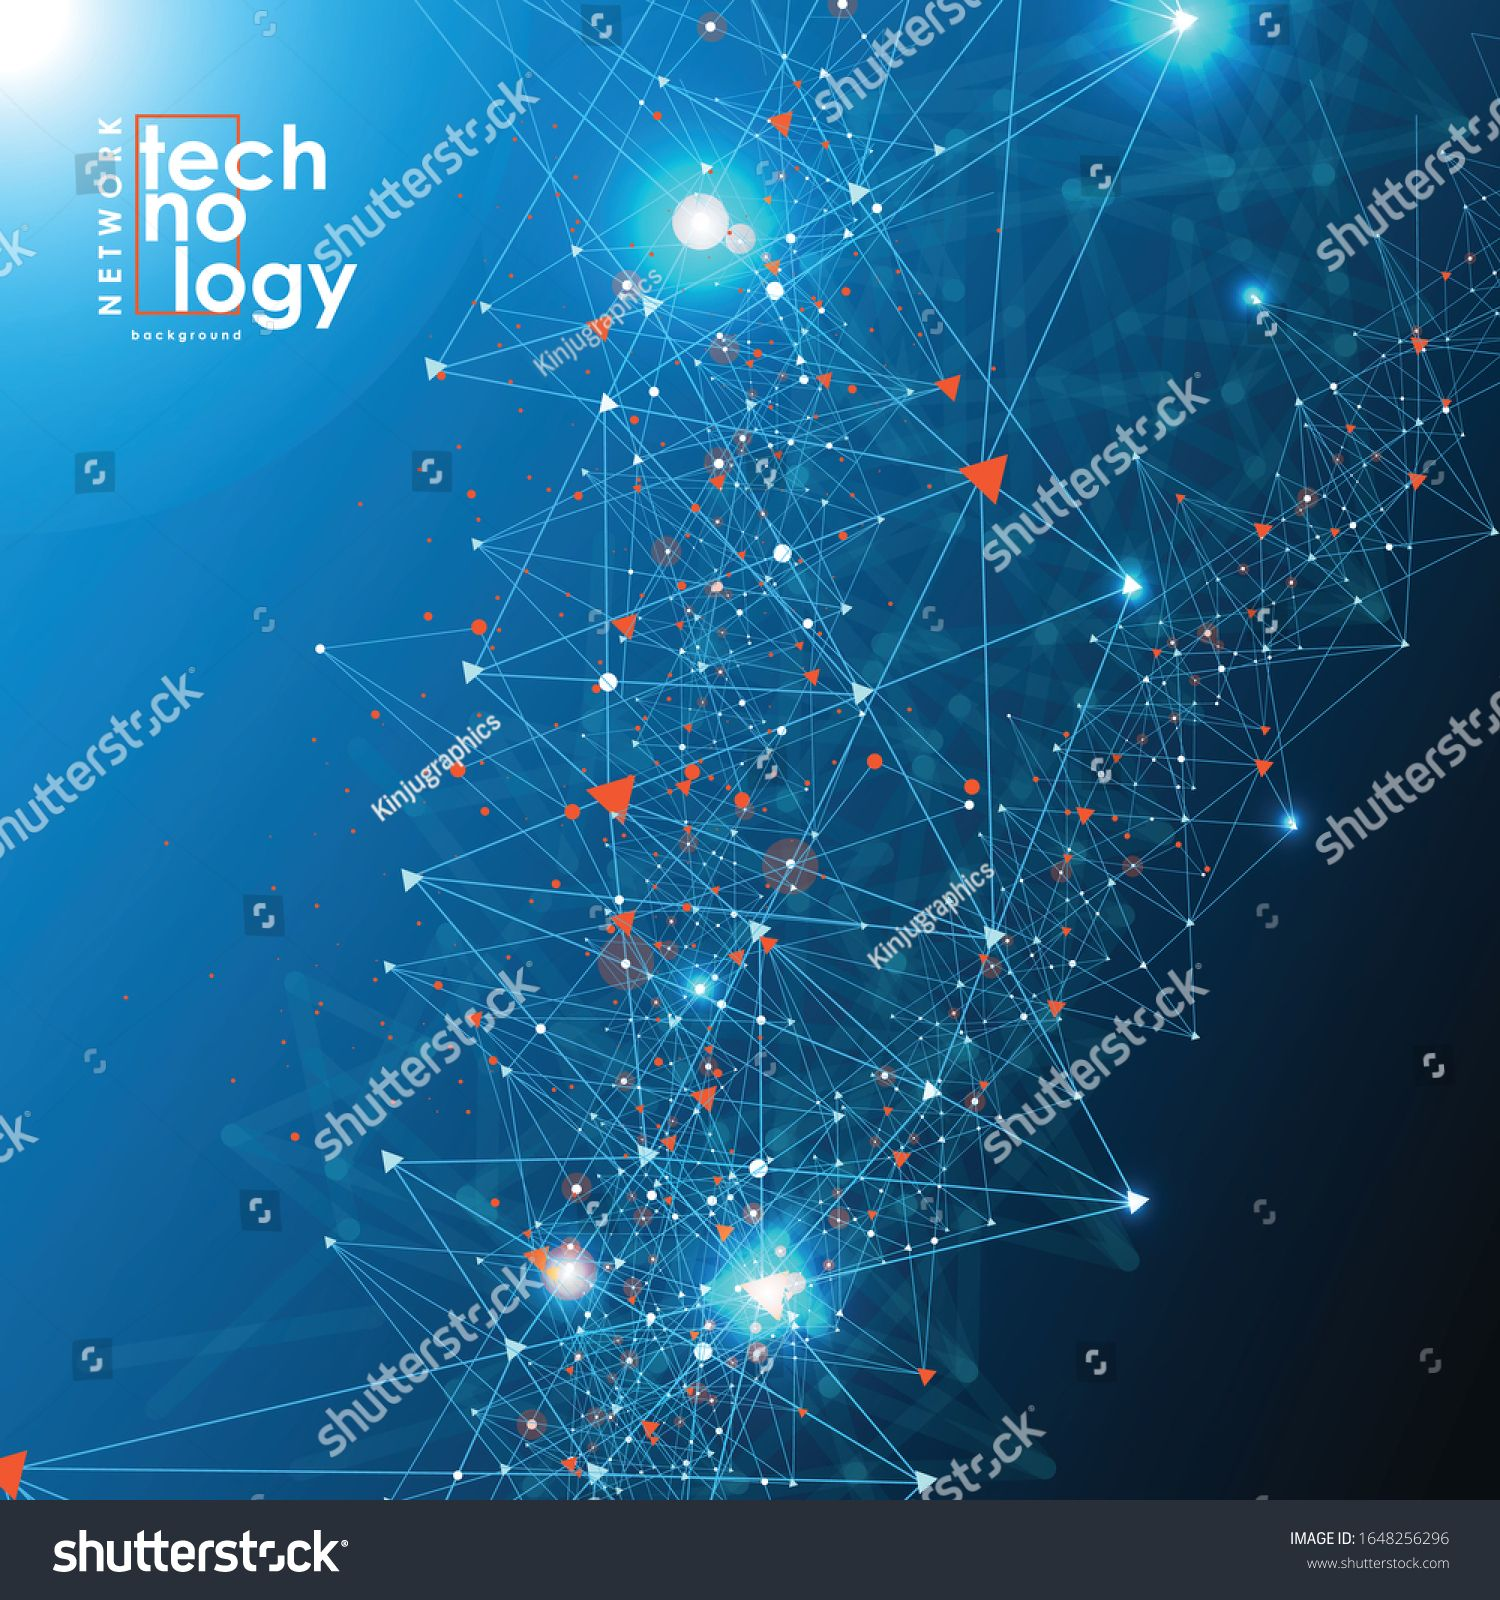 Abstract Technology Background With Big Data Internet Connection Abstract Sense Of Science And Technolo In 2020 Digital Illustration Technology Background Background